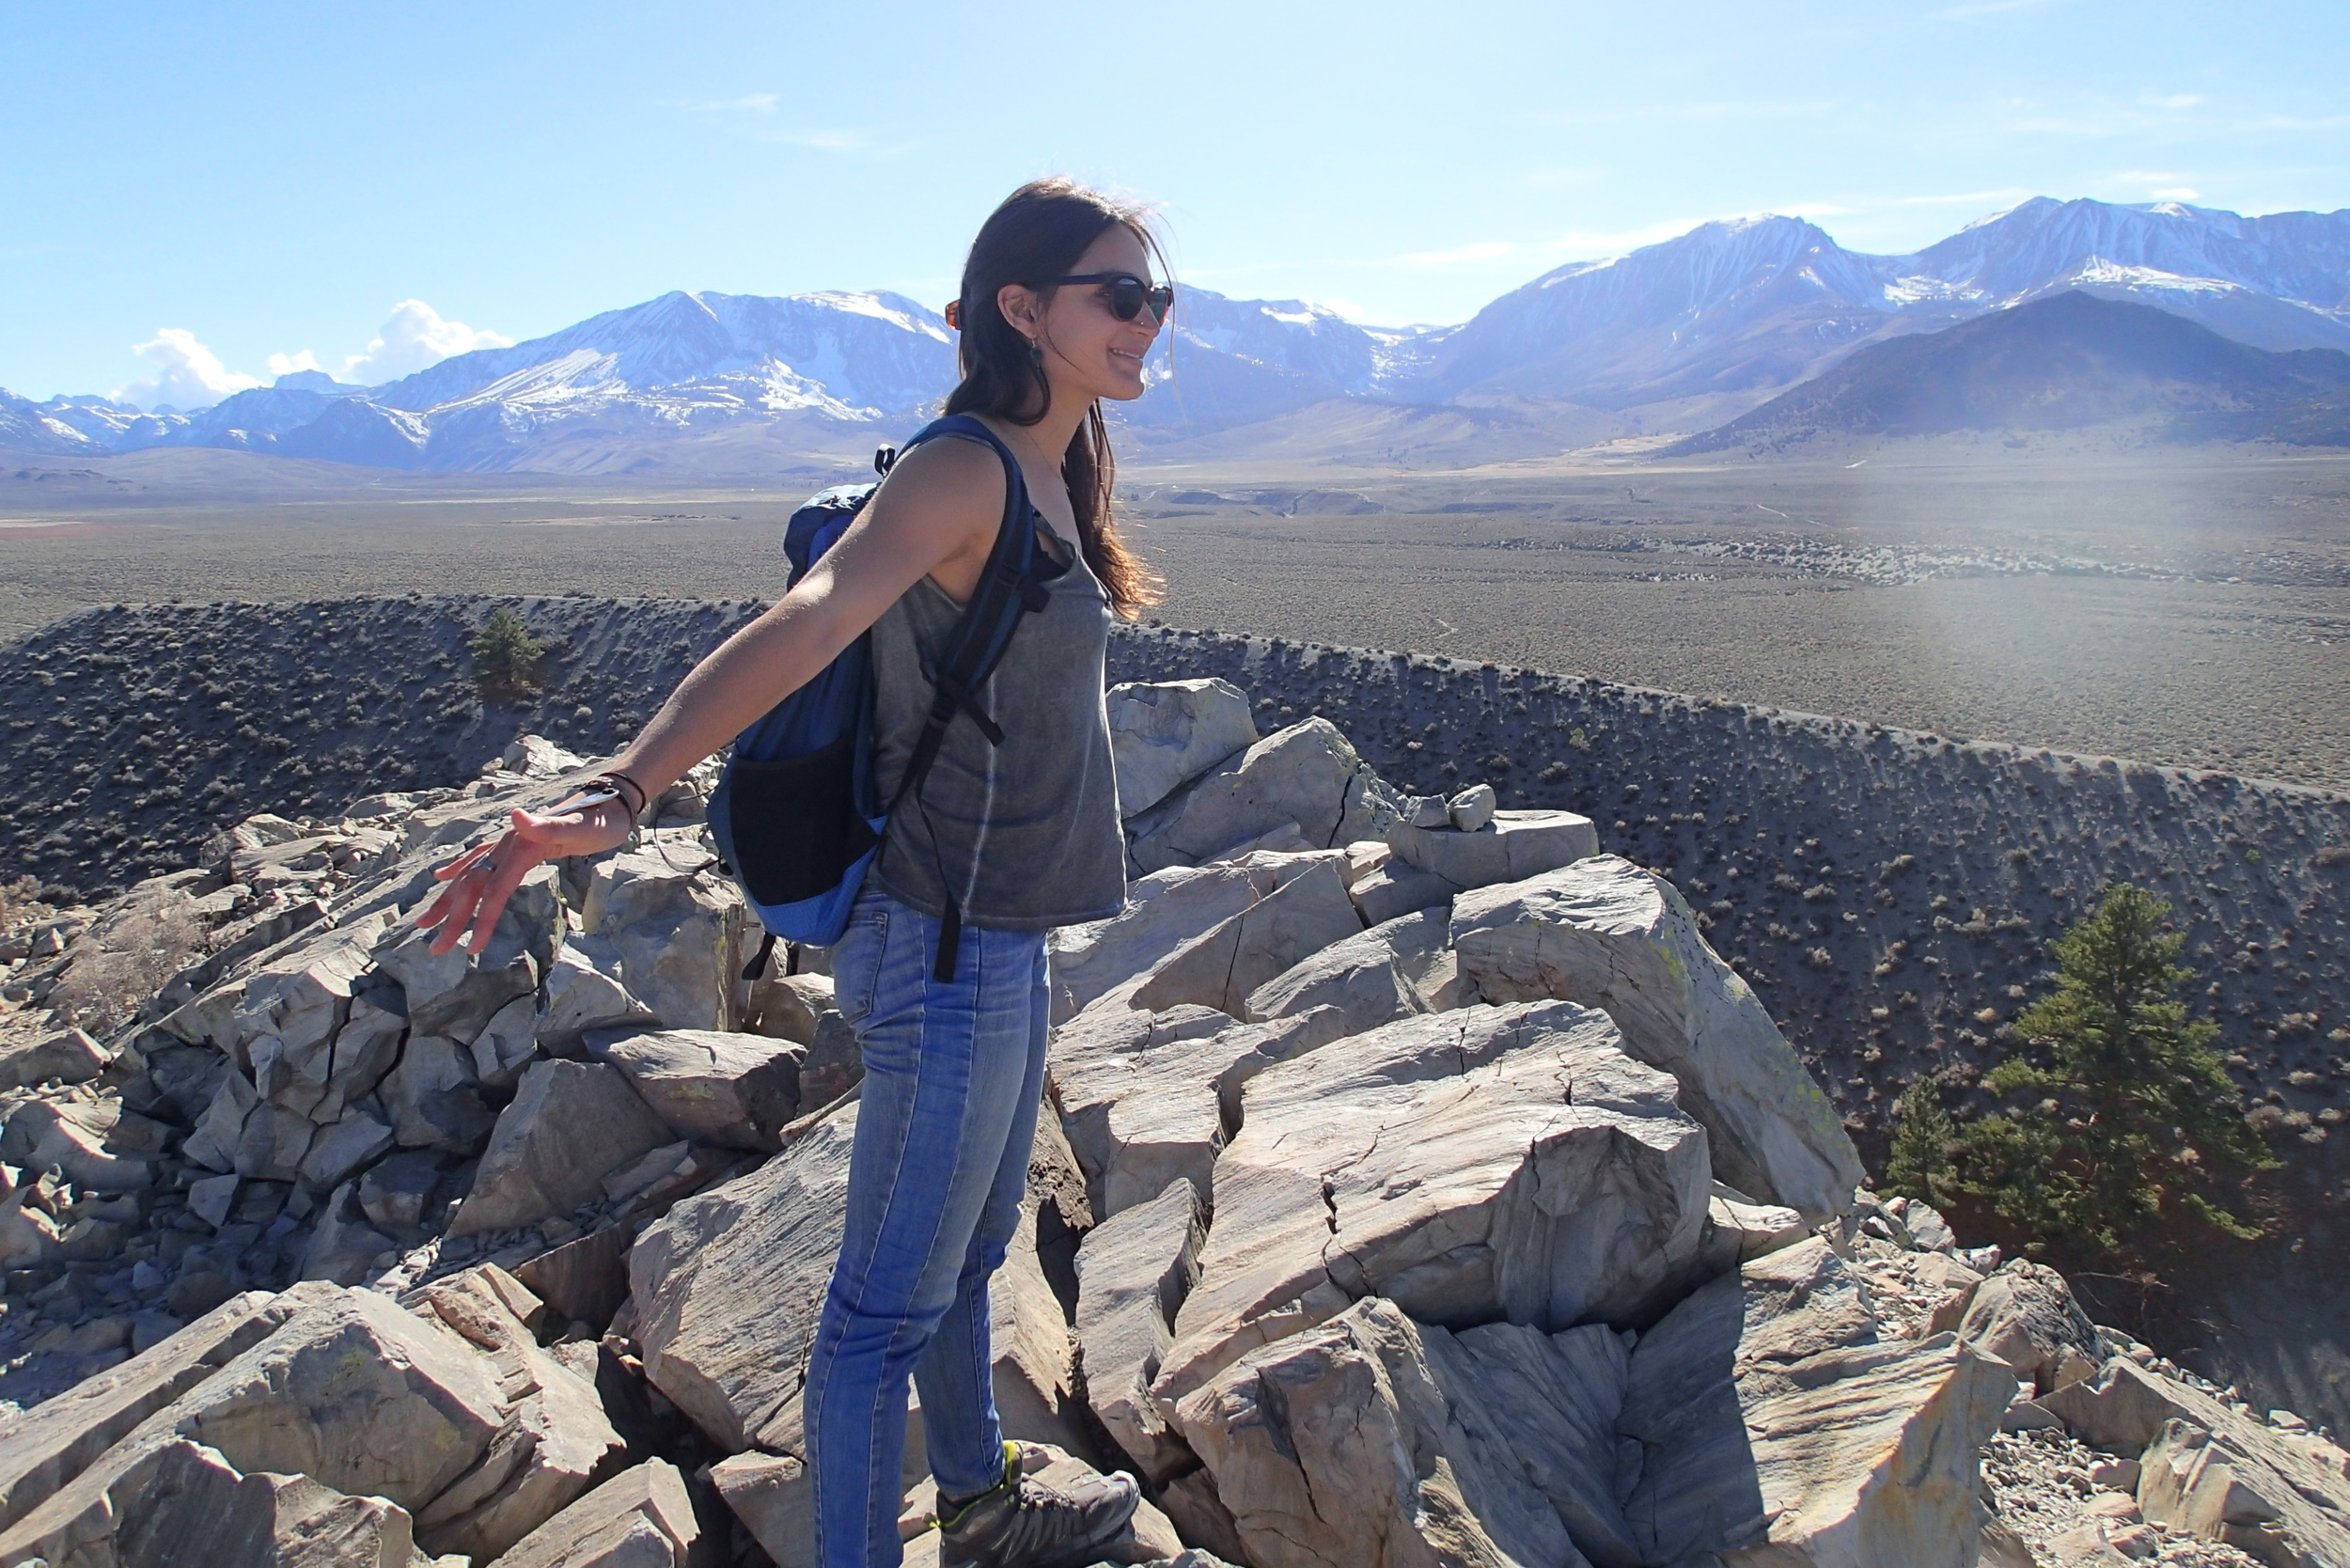 Panum crater. Above mono lake, soaking it all in.